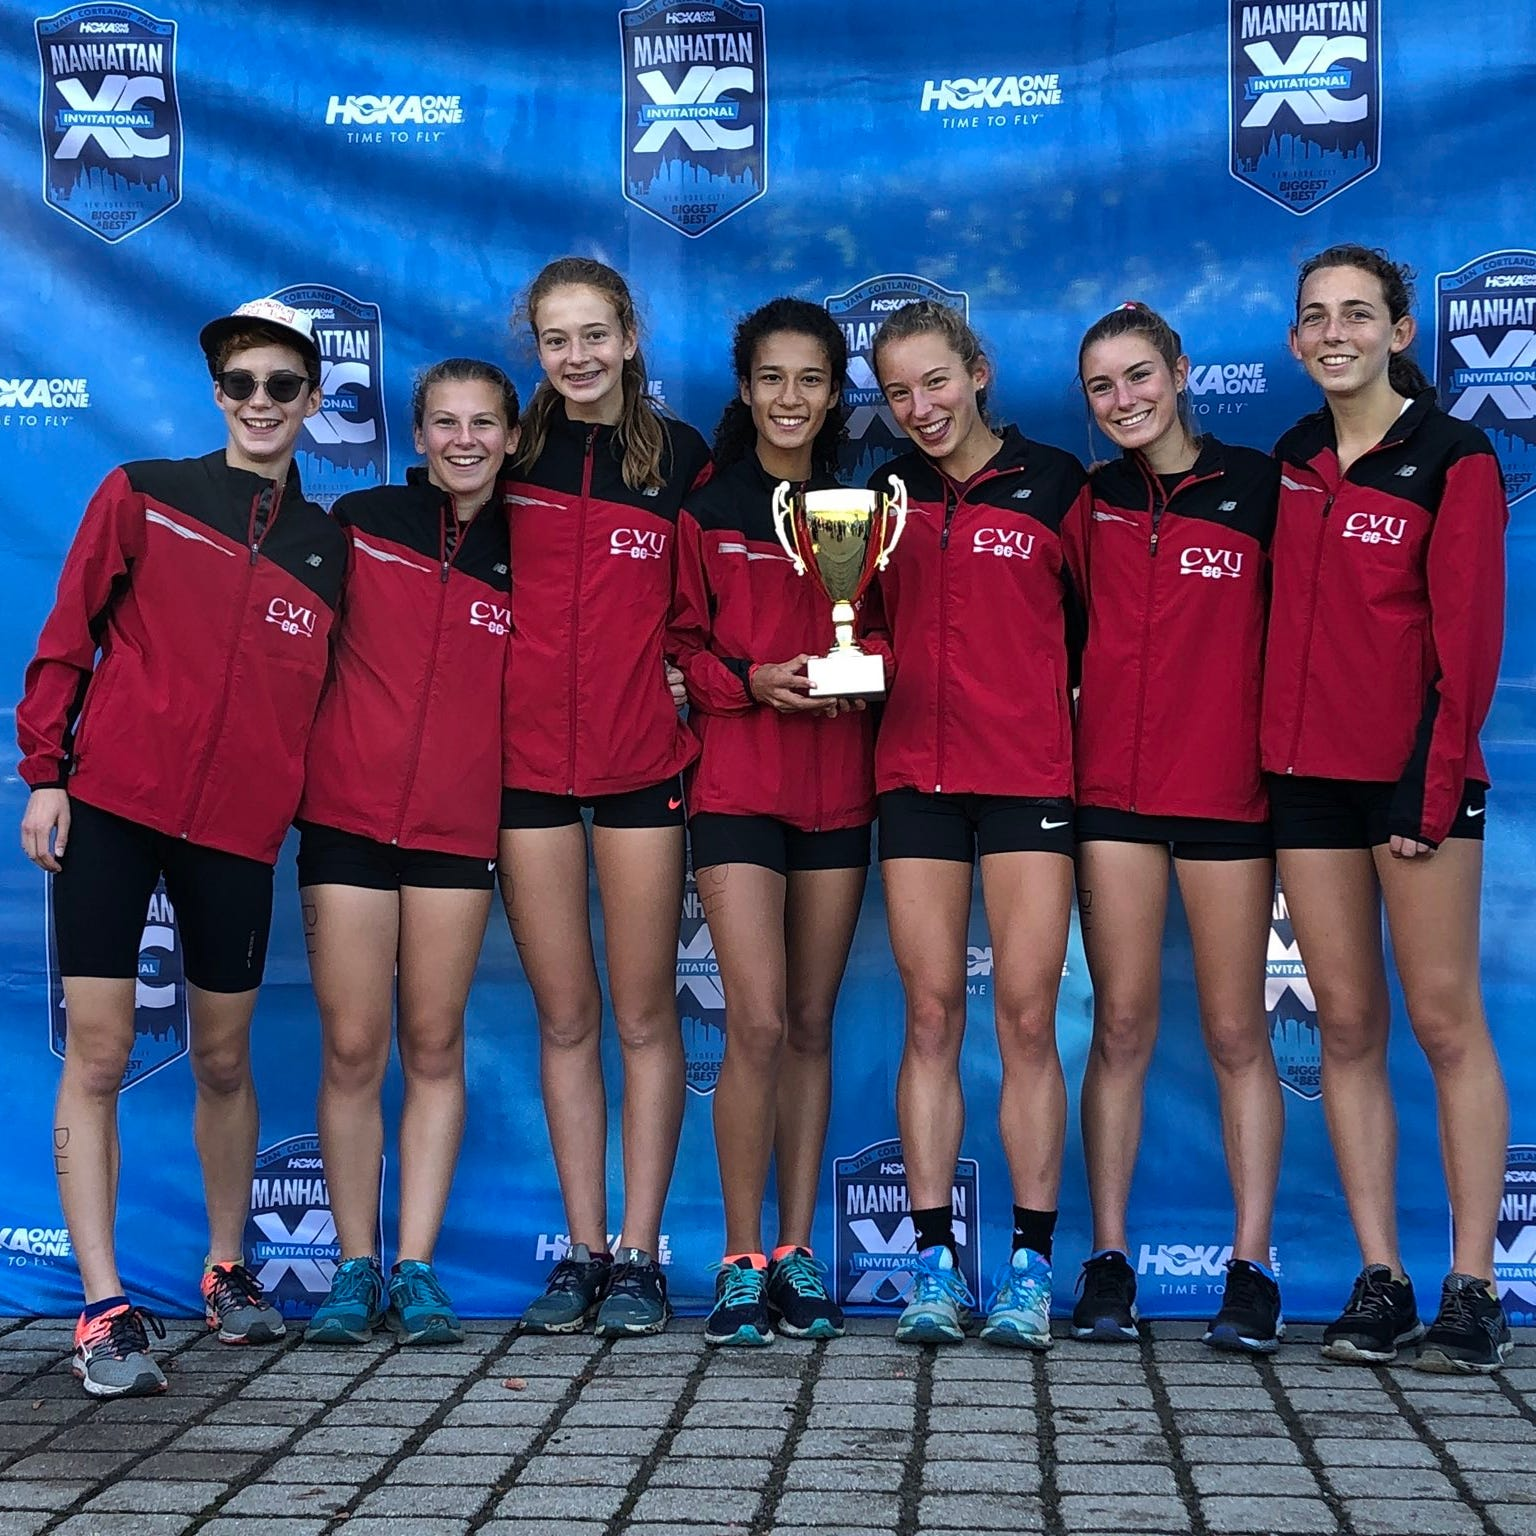 Vermont high school highlights: CVU XC shines at Manhattan Invitational